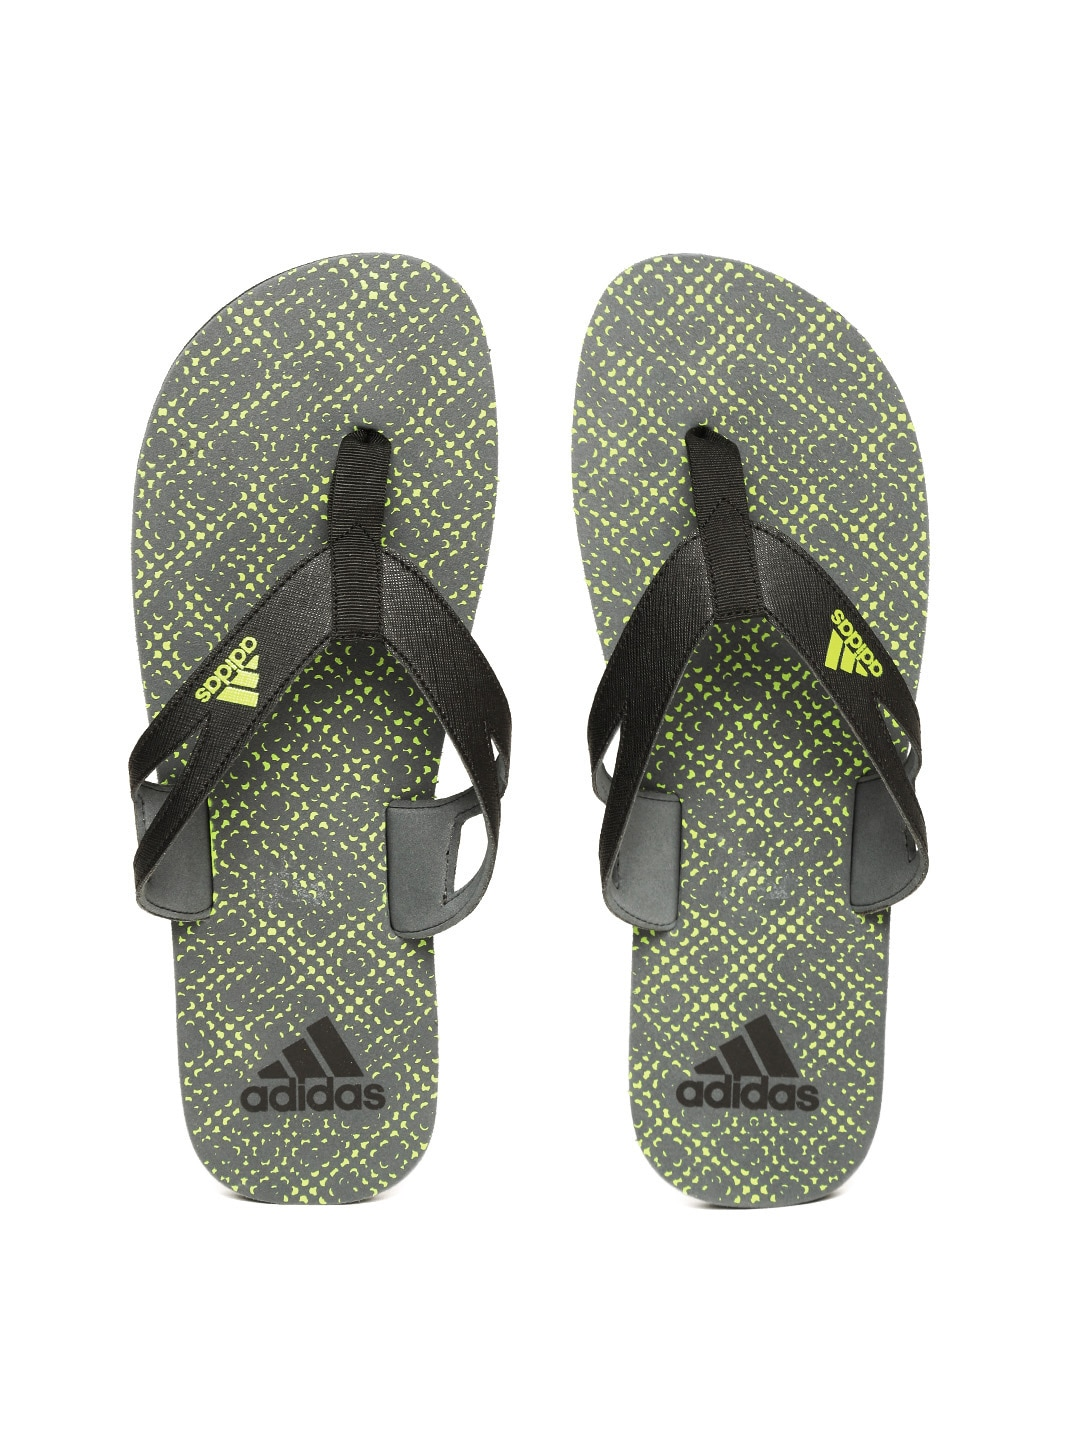 e318cc214783a5 Adidas Only Hat Flip Flops - Buy Adidas Only Hat Flip Flops online in India